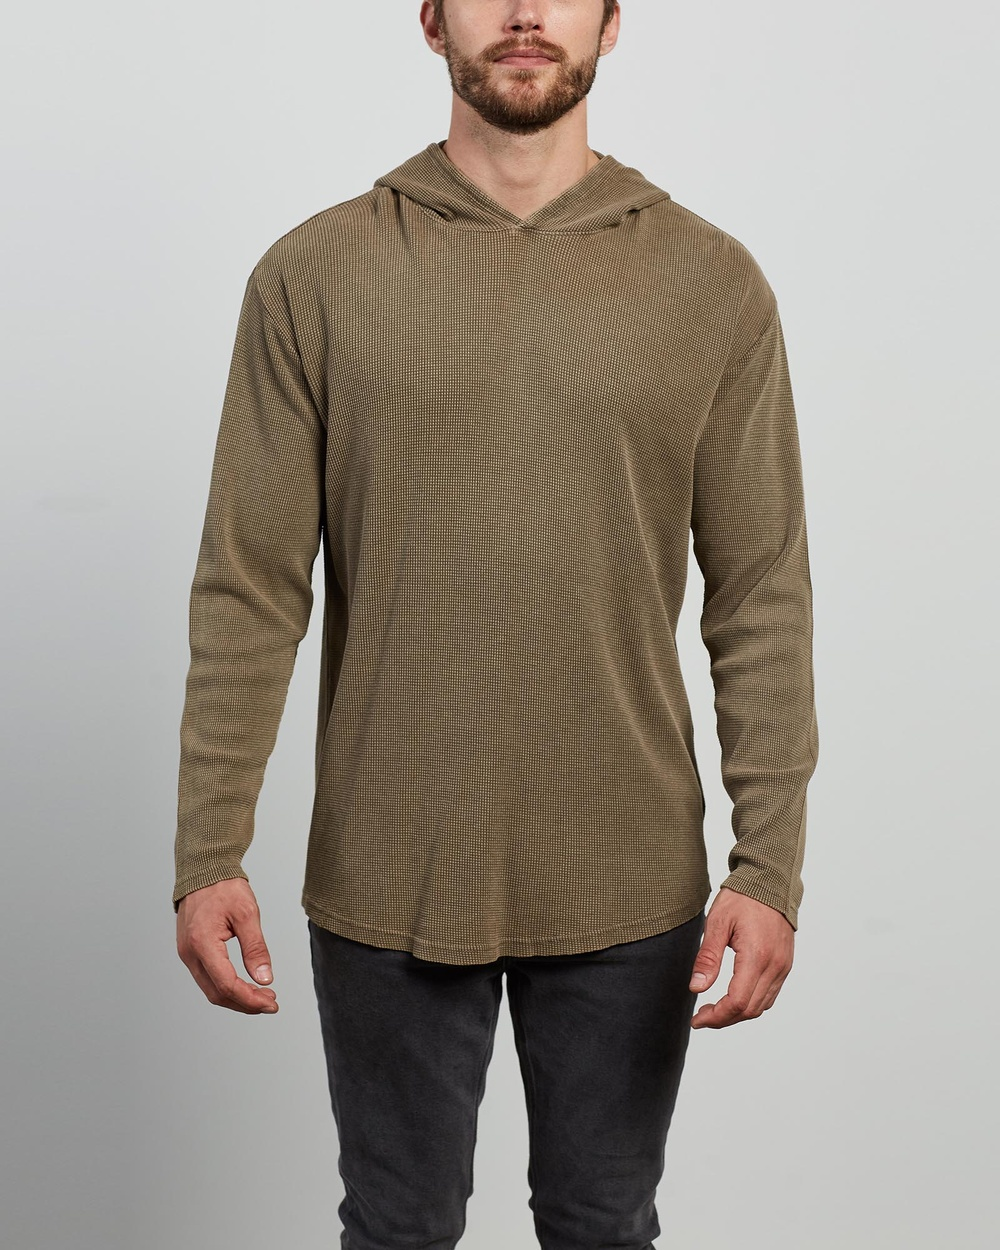 Silent Theory - Hooded Waffle LS Tee - T-Shirts & Singlets (BROWN) Hooded Waffle LS Tee